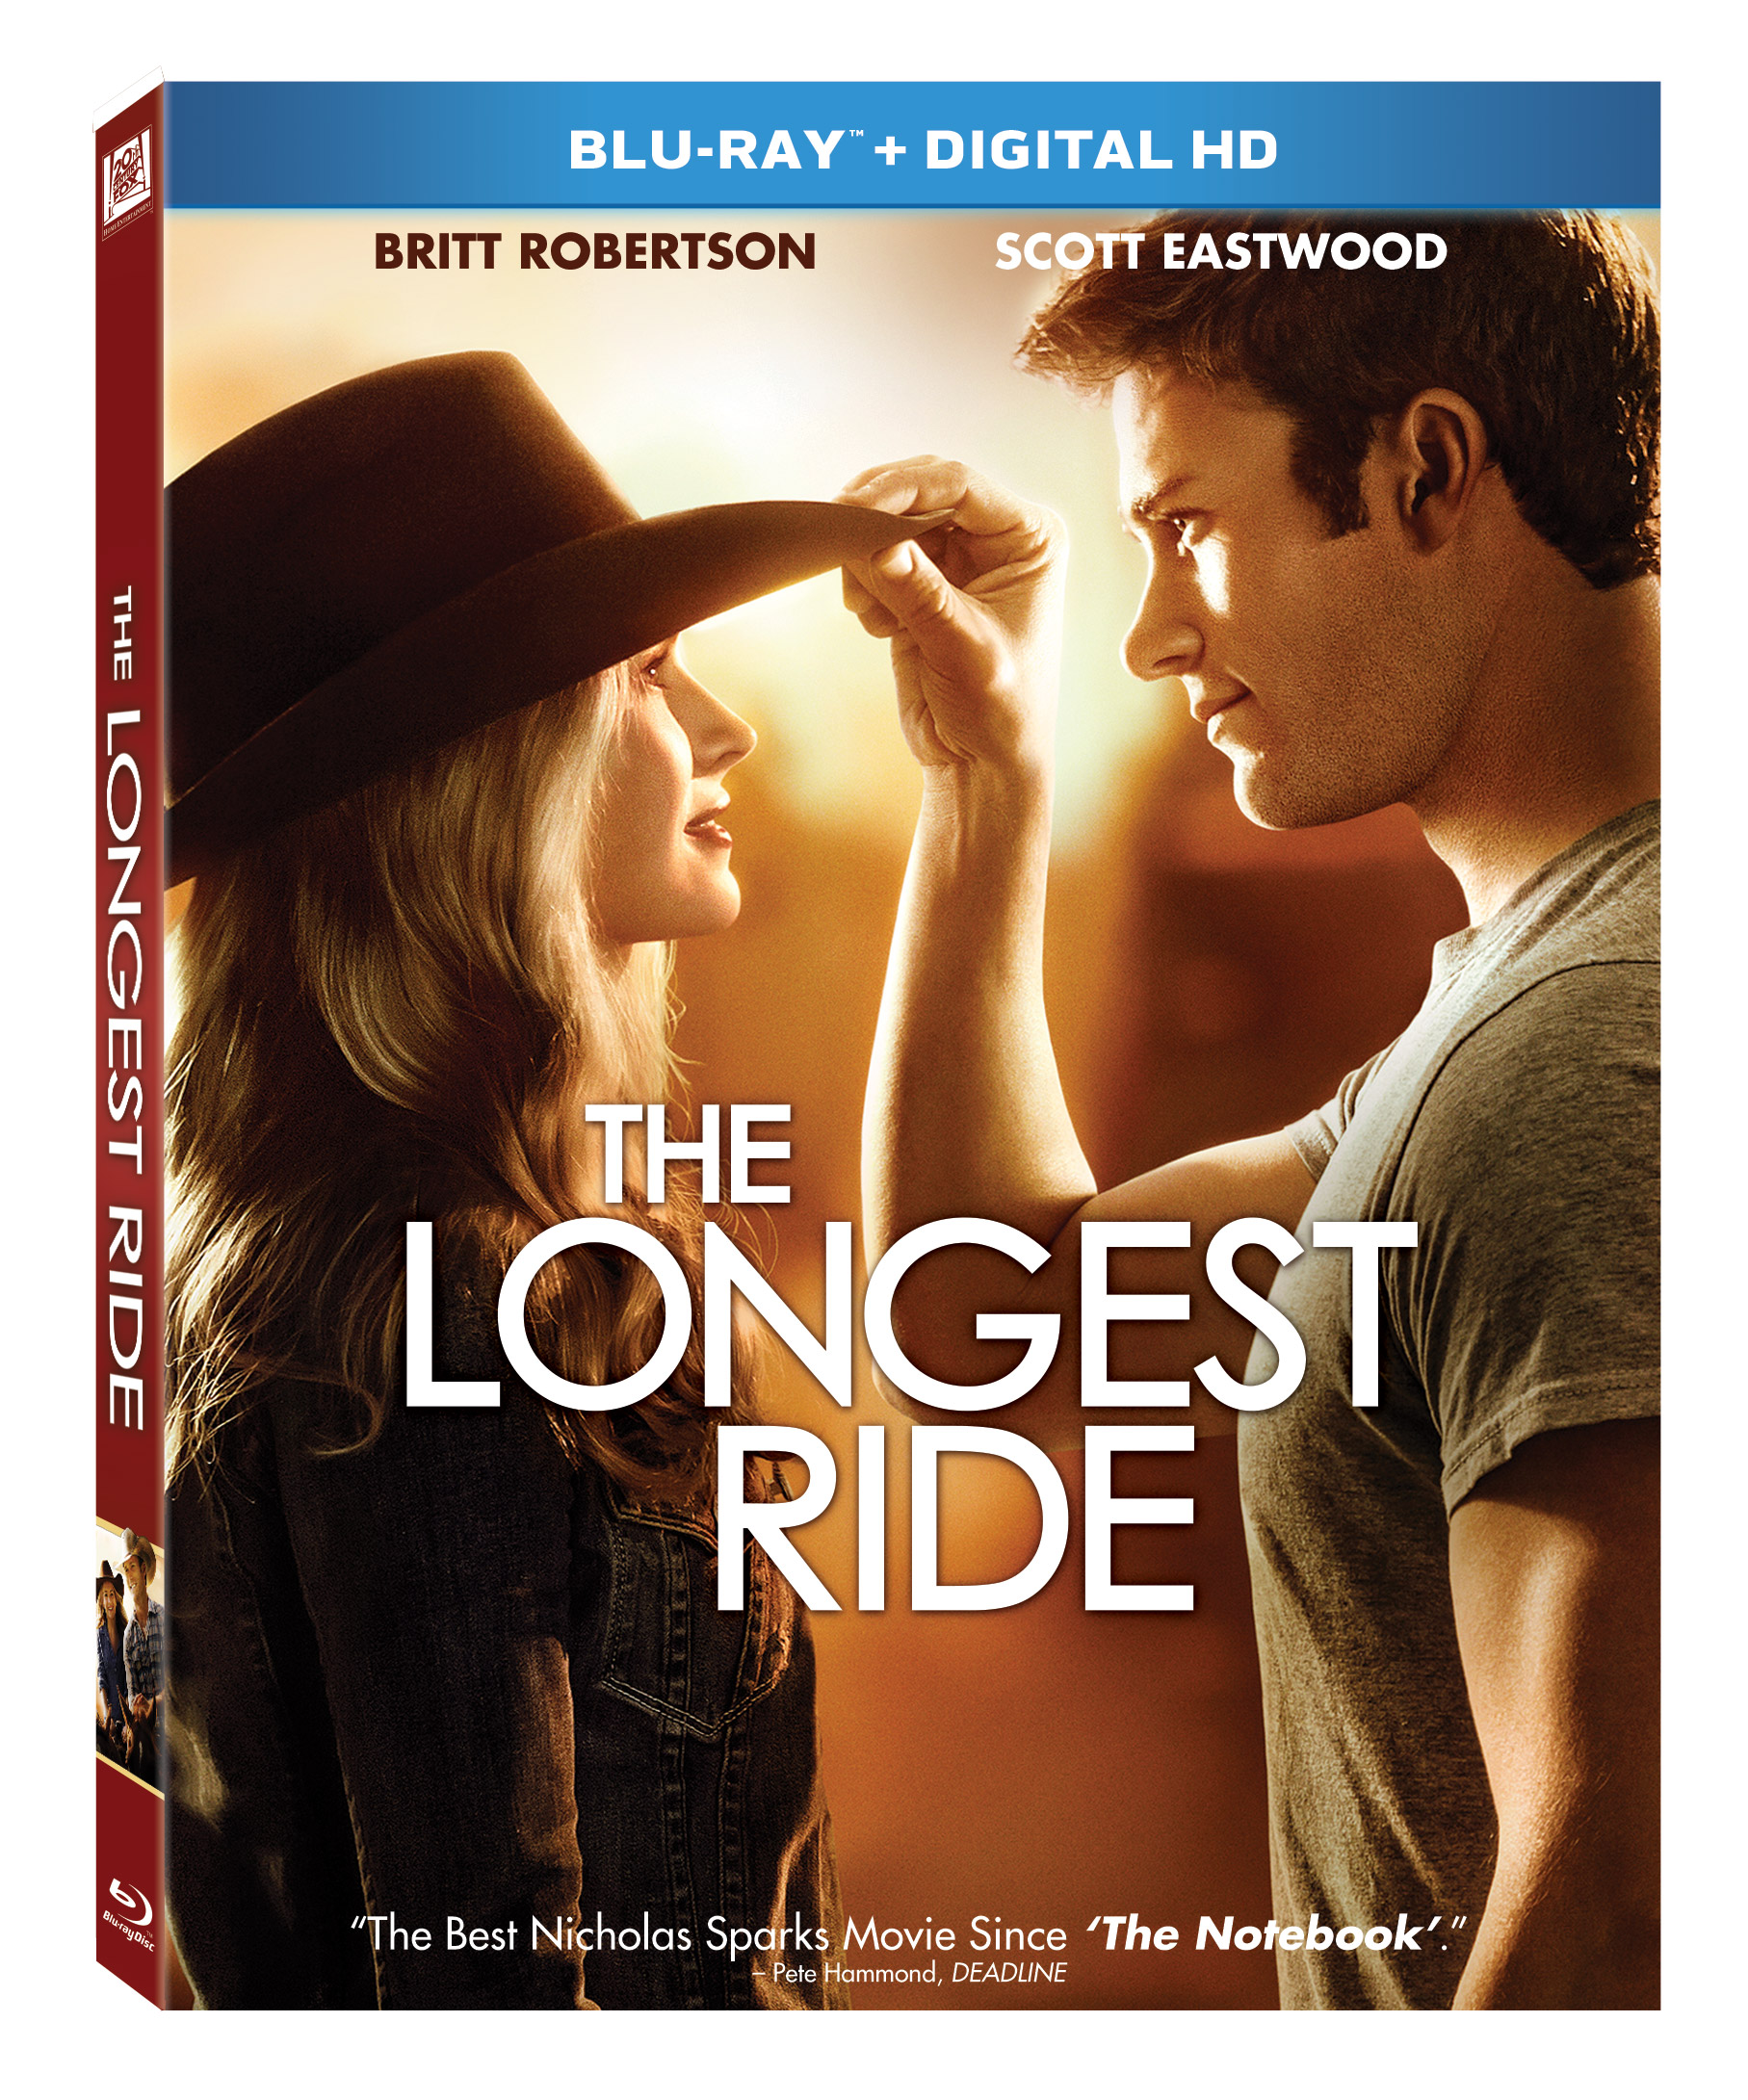 Perfect Date Night Movie ~ The Longest Ride Now Available on Blu ...